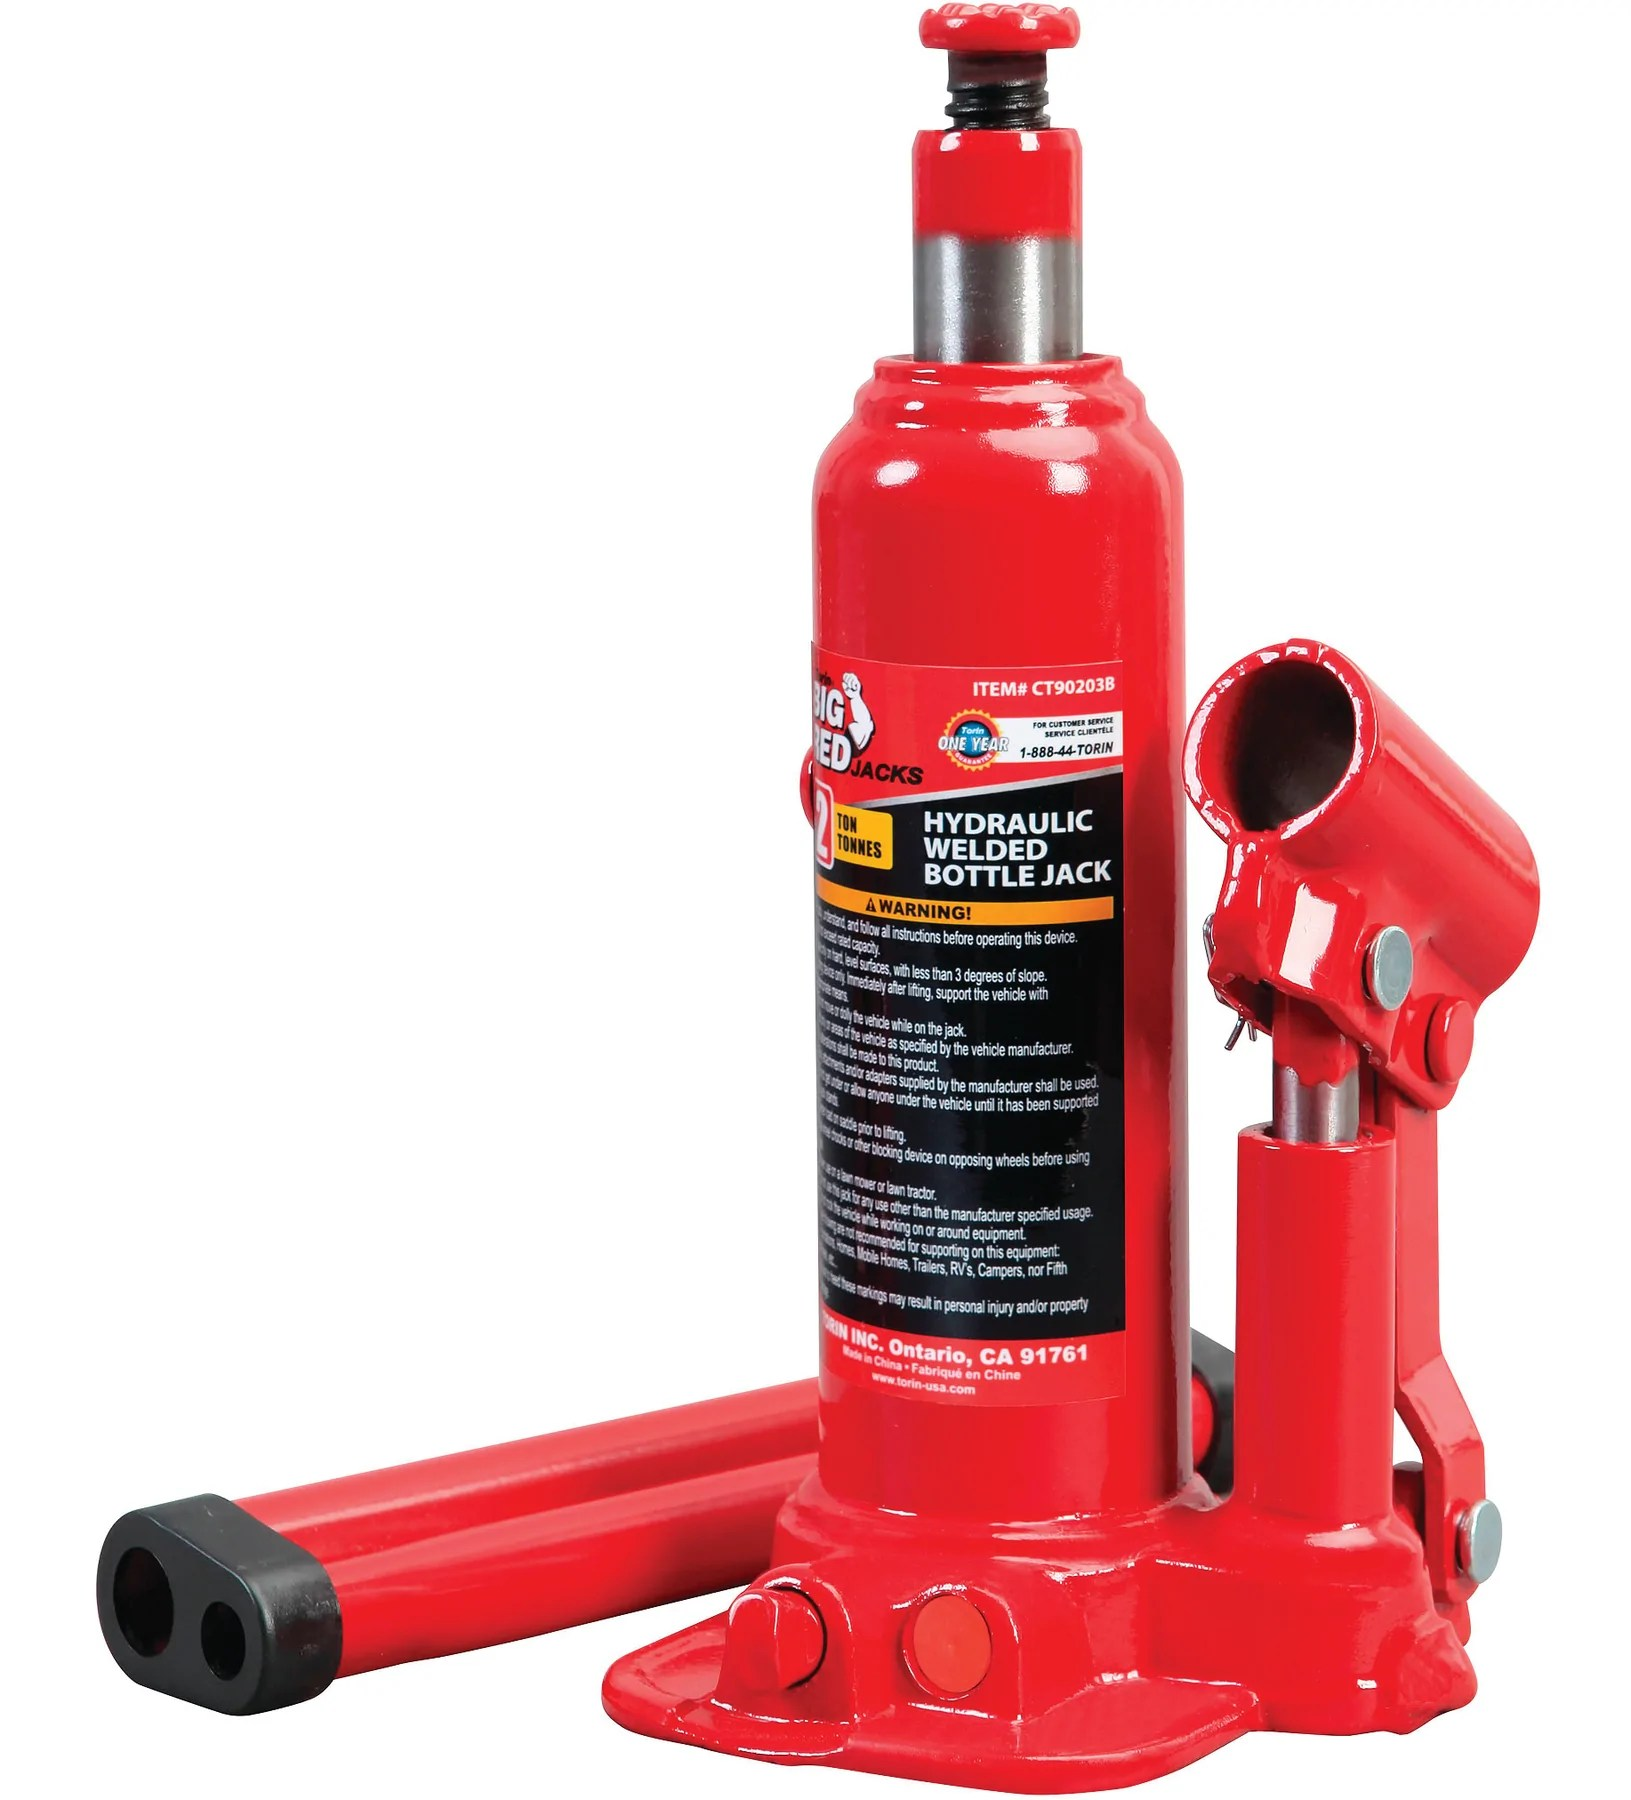 Big Red Welding Hydraulic Bottle Jack 2 Ton Partsource